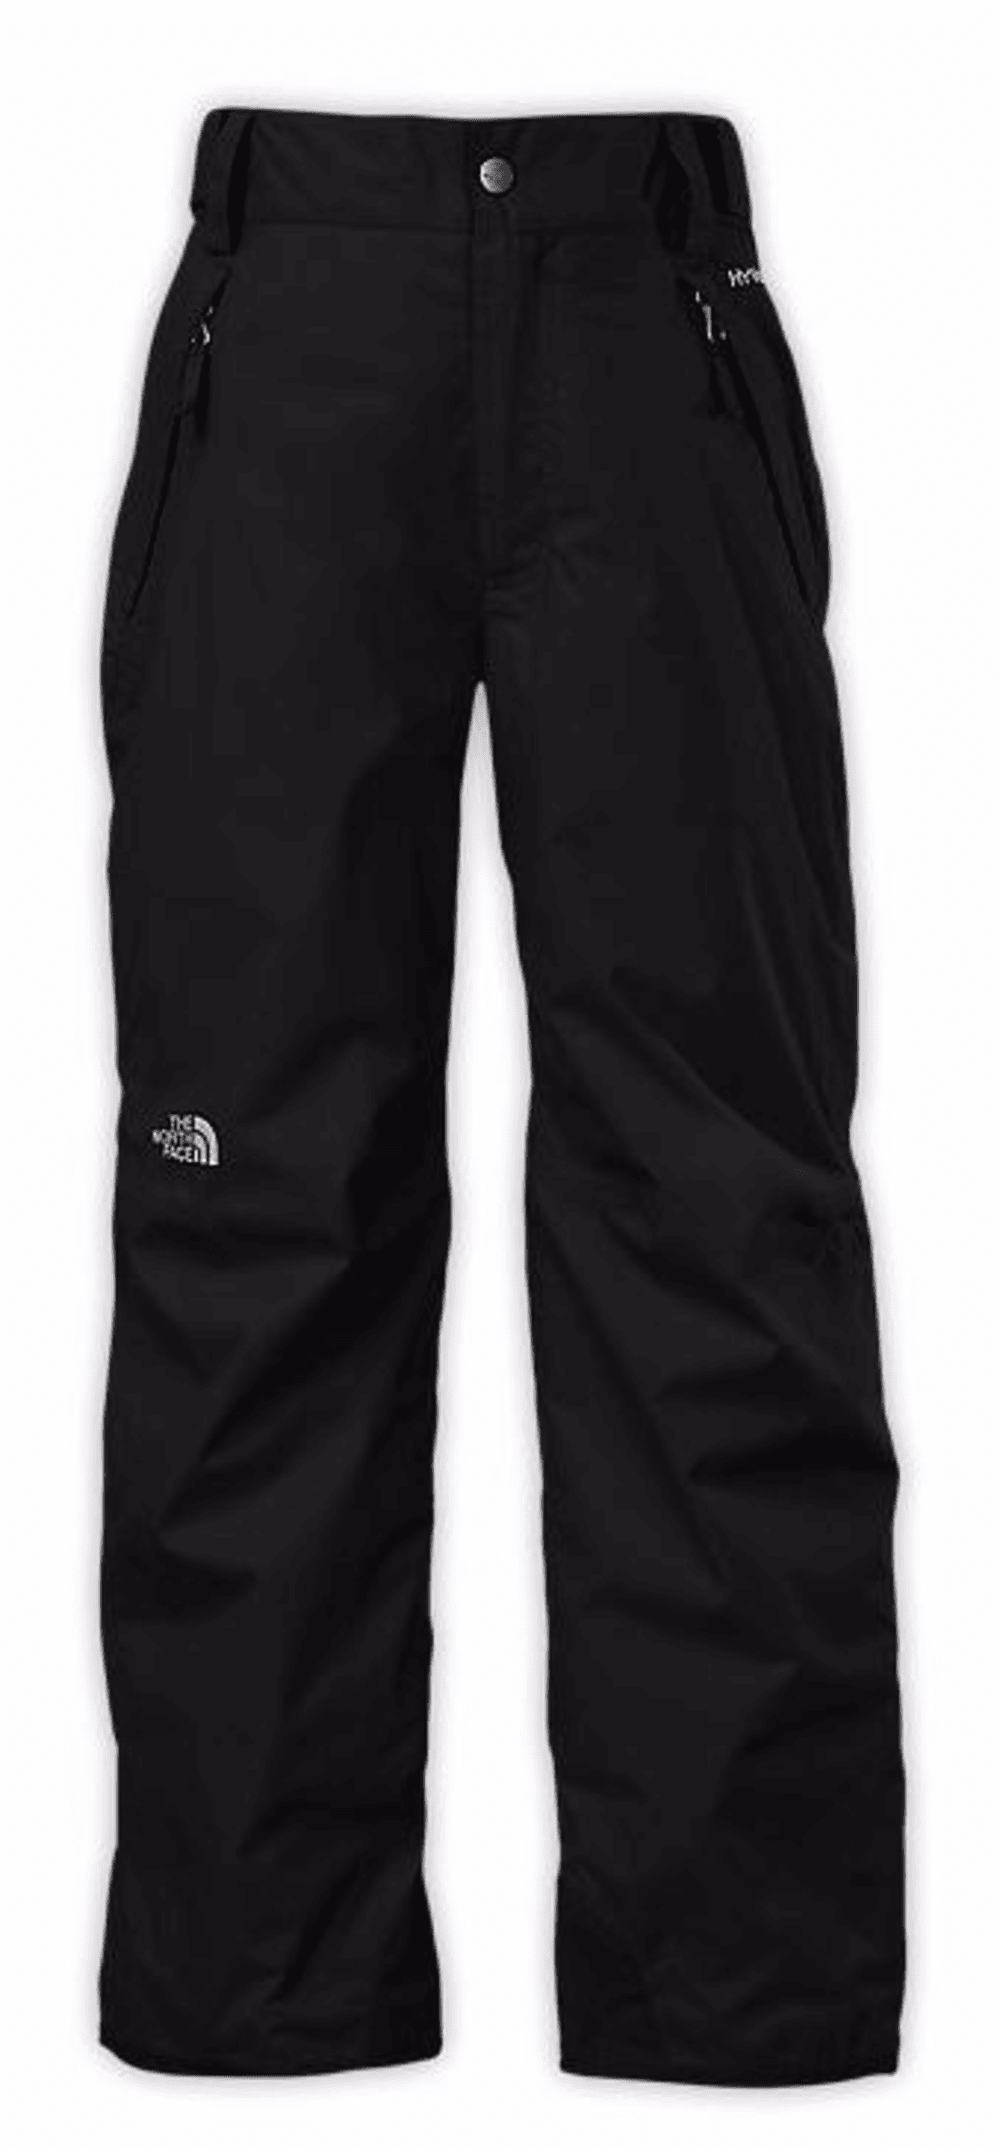 THE NORTH FACE Boys' Freedom Insulated Pants - BLACK